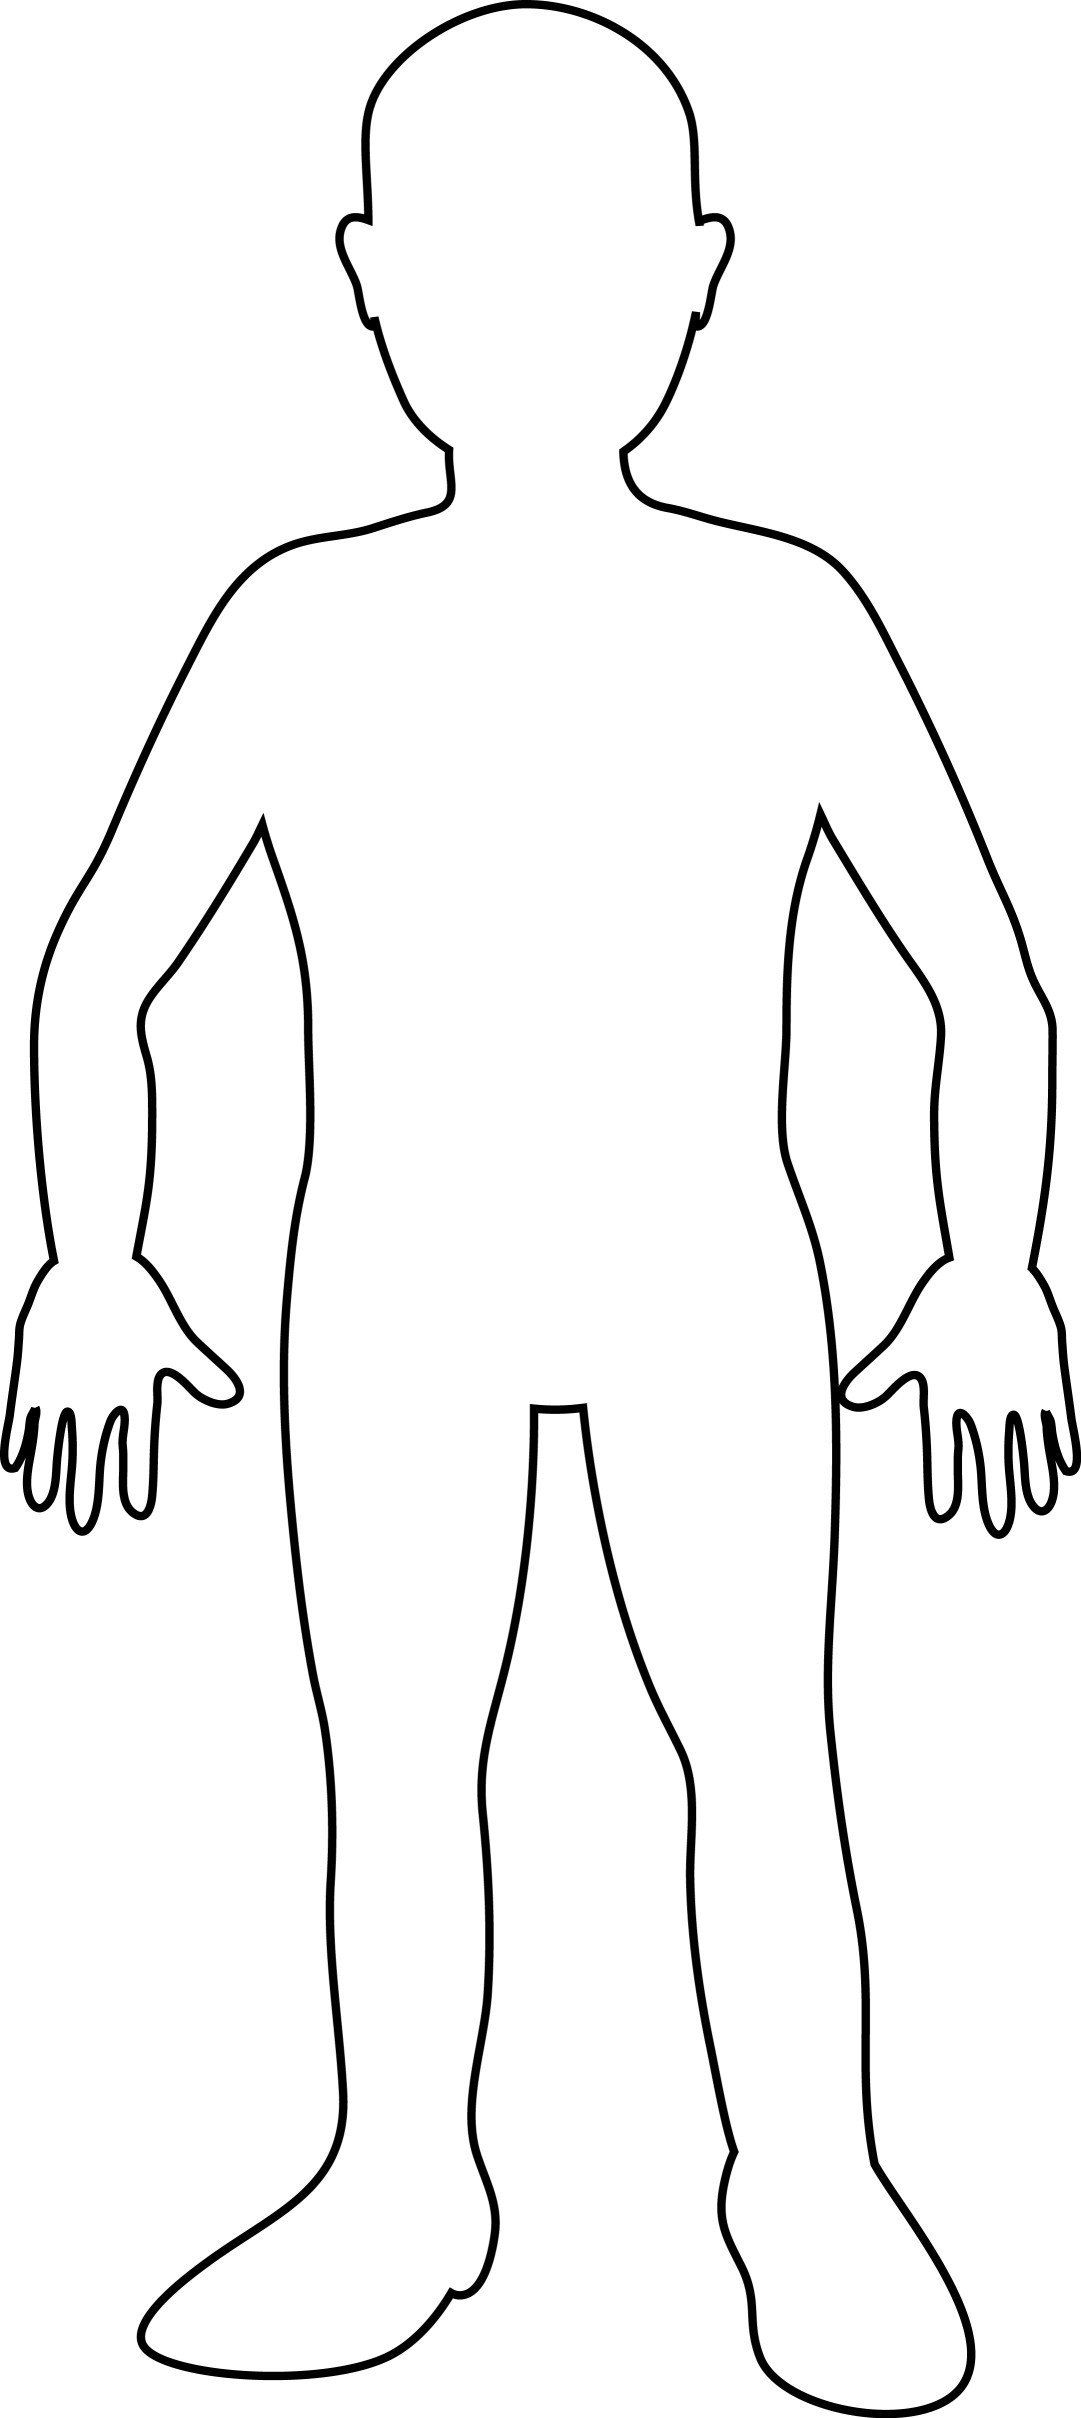 30 Human Body Outline Printable In